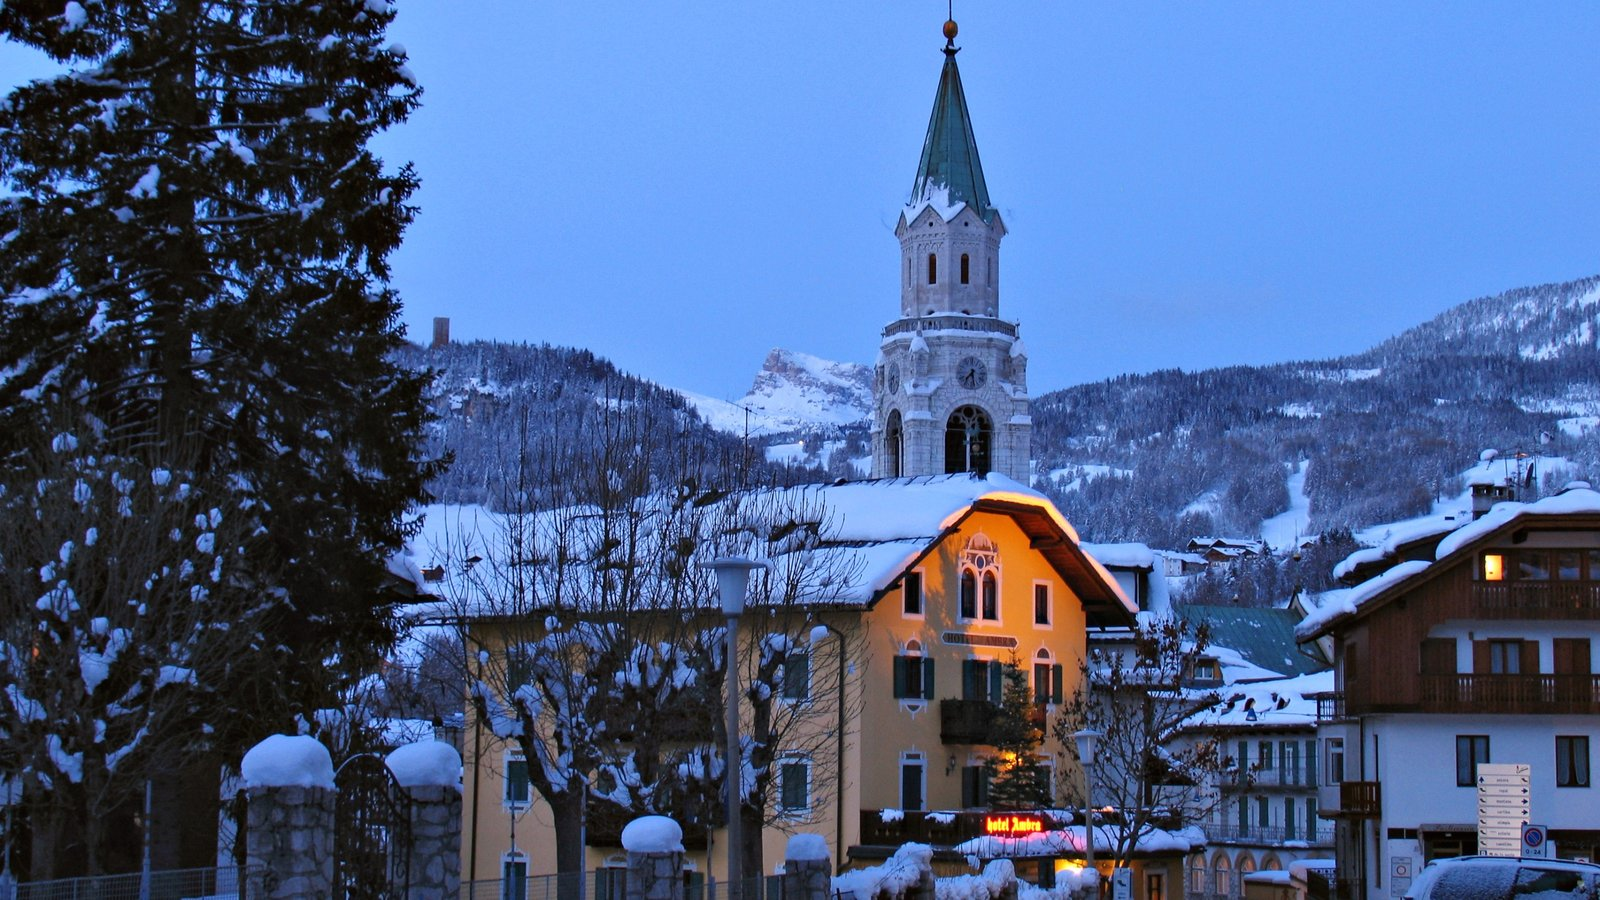 Cortina d\'Ampezzo showing snow, a hotel and a church or cathedral